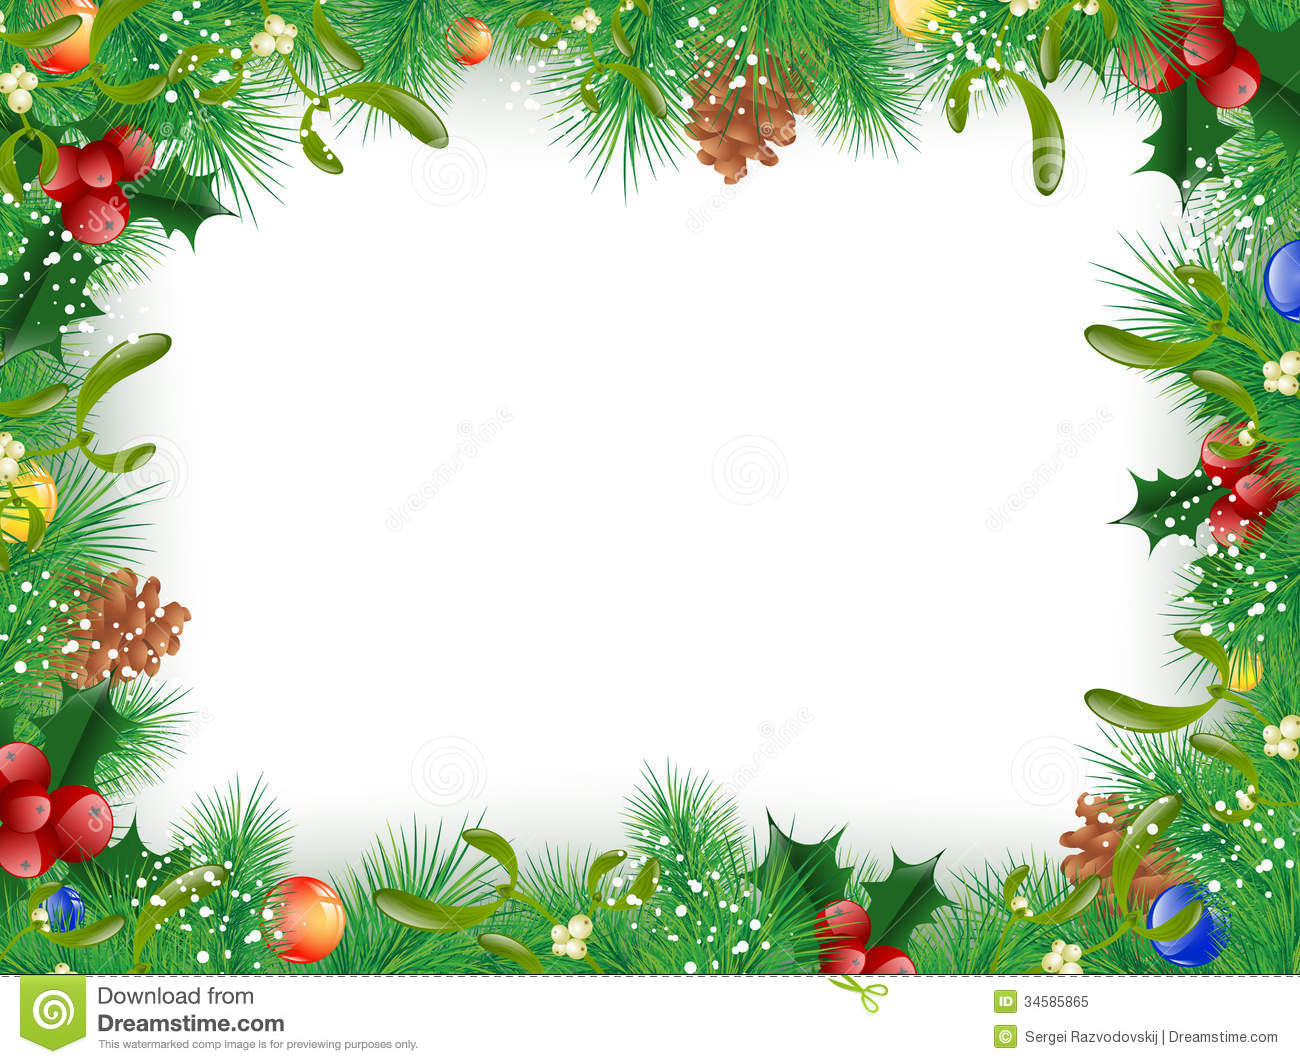 Christmas And New Year Frame Stock Vector - Illustration of cone ...